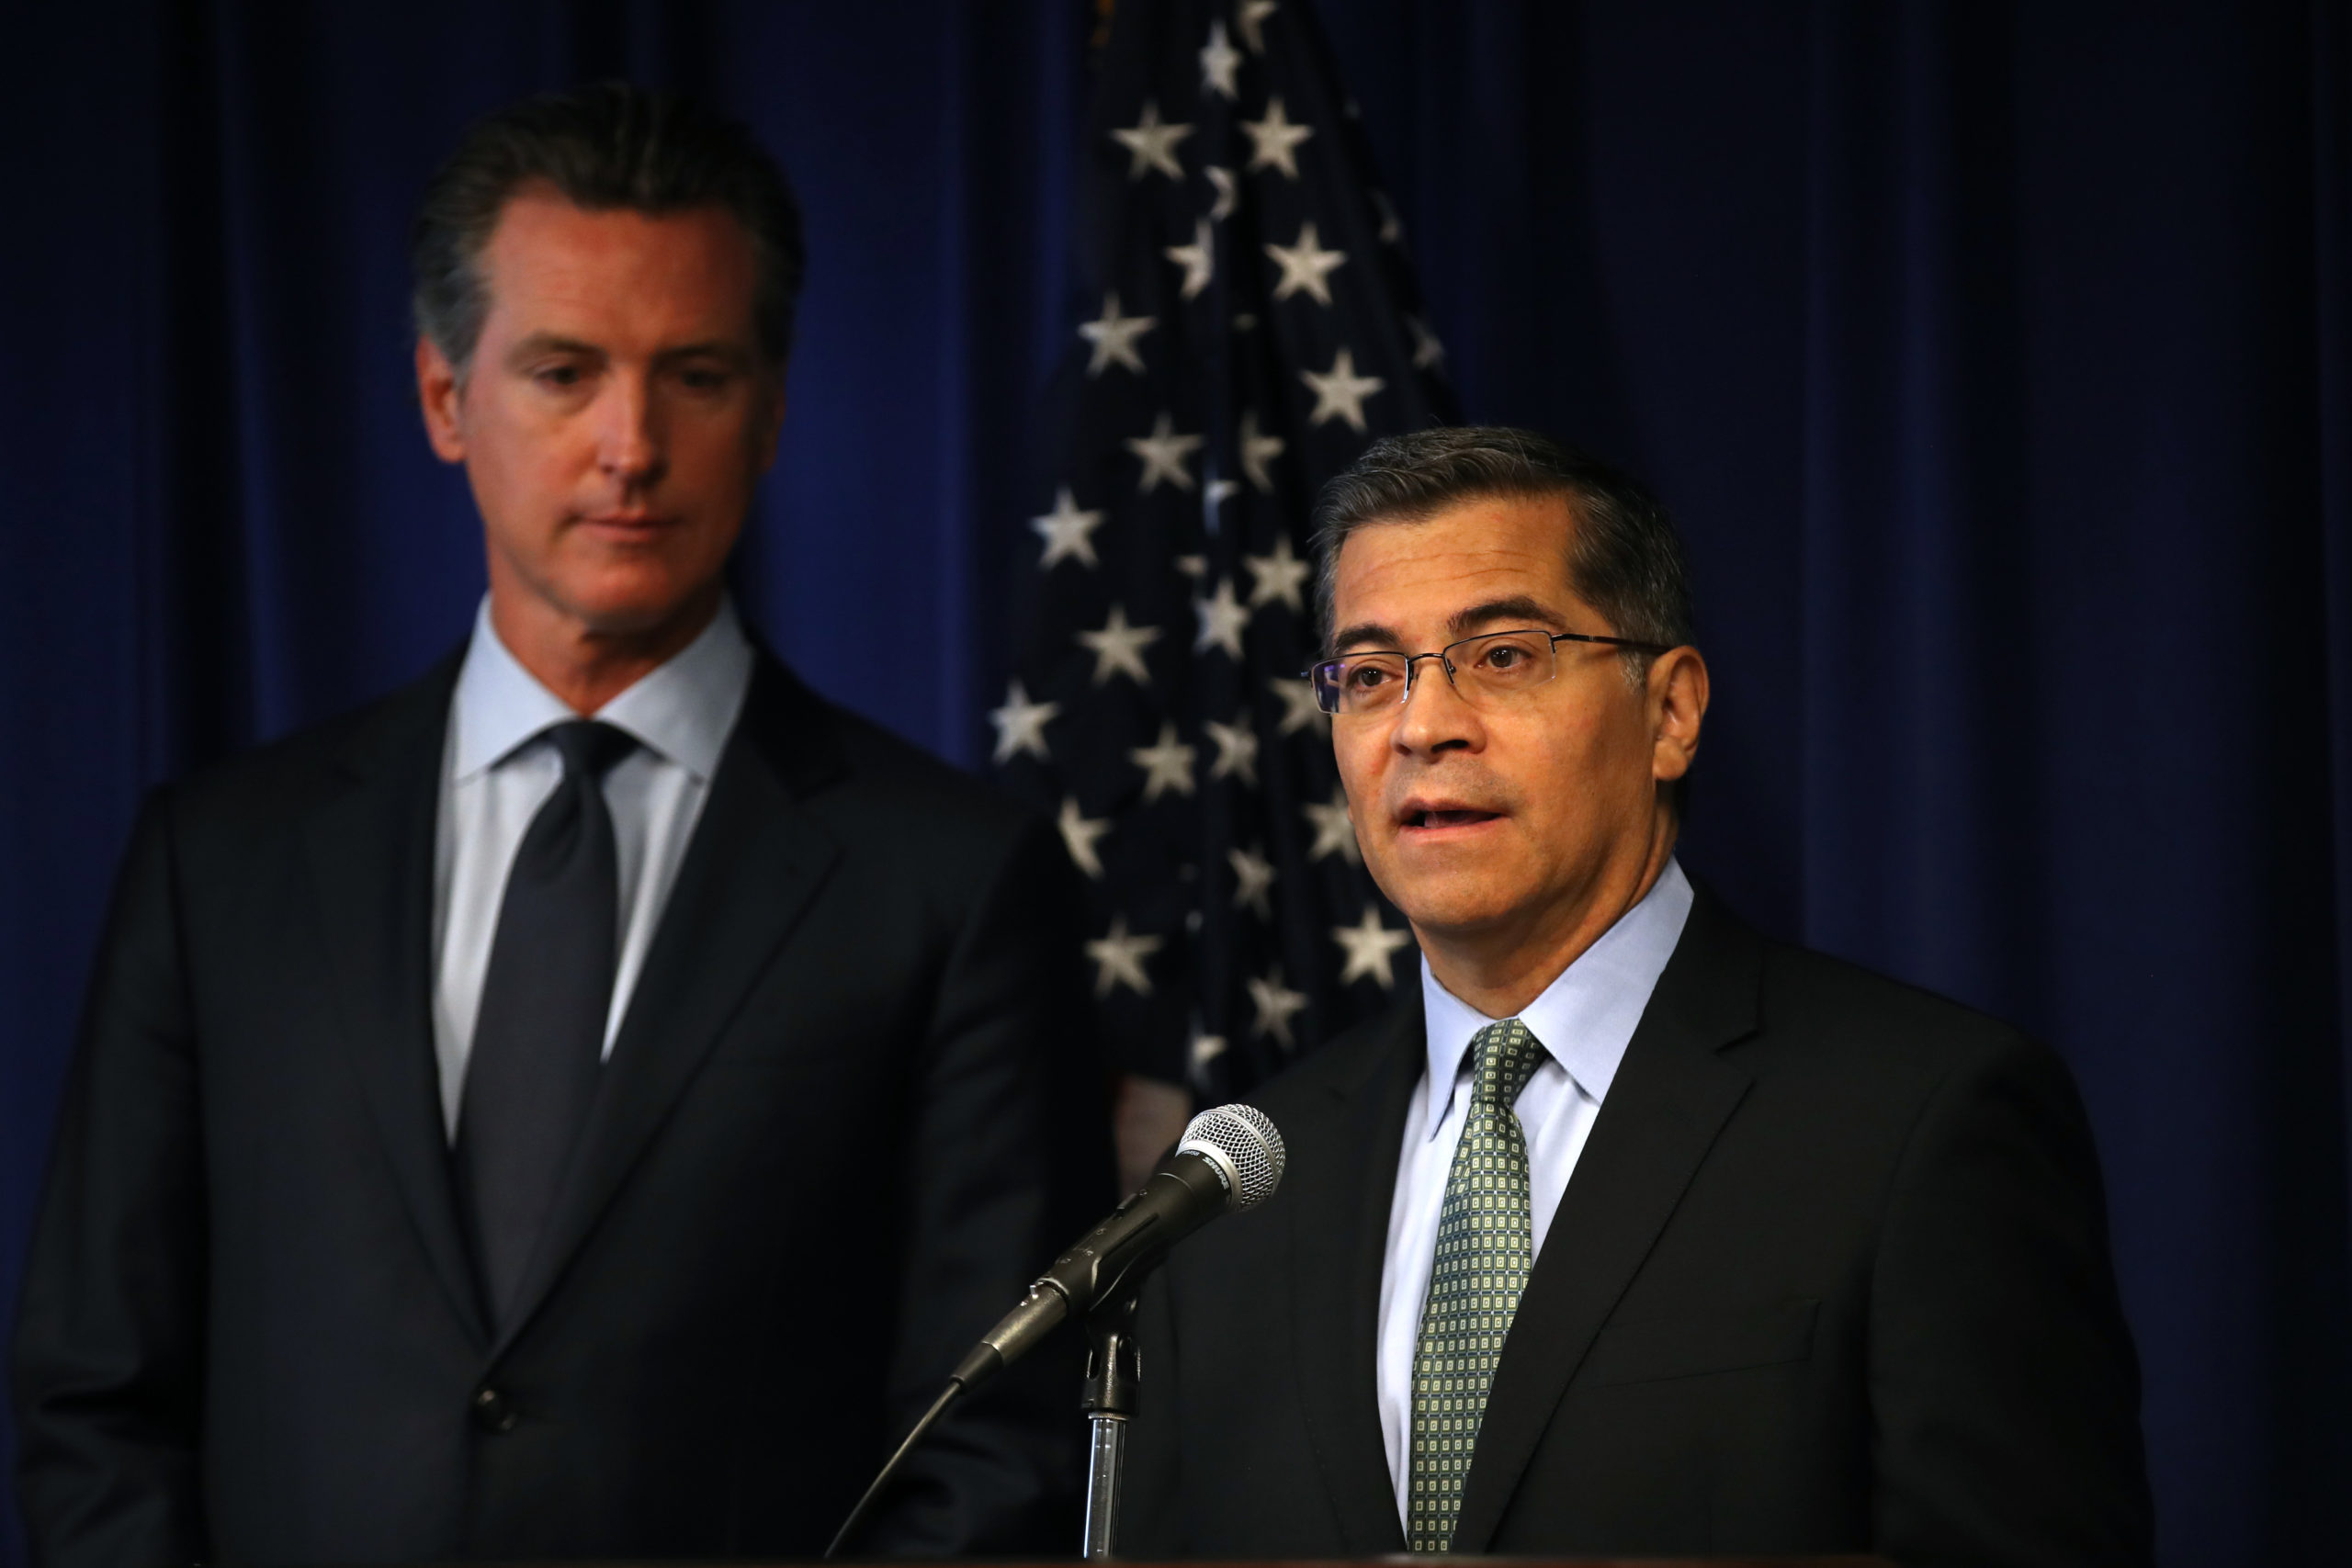 SACRAMENTO, CALIFORNIA - SEPTEMBER 18: California attorney general Xavier Becerra (R) speaks as California Gov. Gavin Newsom (L) looks on during a news conference at the California justice department on September 18, 2019 in Sacramento, California. California Gov. Gavin Newsom, California attorney general Xavier Becerra and California Air Resources Board Chair Mary Nichols held a news conference in response to the Trump Administration's plan to revoke California's waiver to establish vehicle emissions standards for greenhouse gas emissions and standards to require manufacturers to sell zero emissions vehicles. Under the federal Clean Air Act, California is allowed to set its own vehicle emissions standards that are at least as protective as the federal government's standards. The state has received 100 waivers from the Environmental Protection Agency (EPA) for higher standards than federally mandated over the past 50 years. (Justin Sullivan/Getty Images)